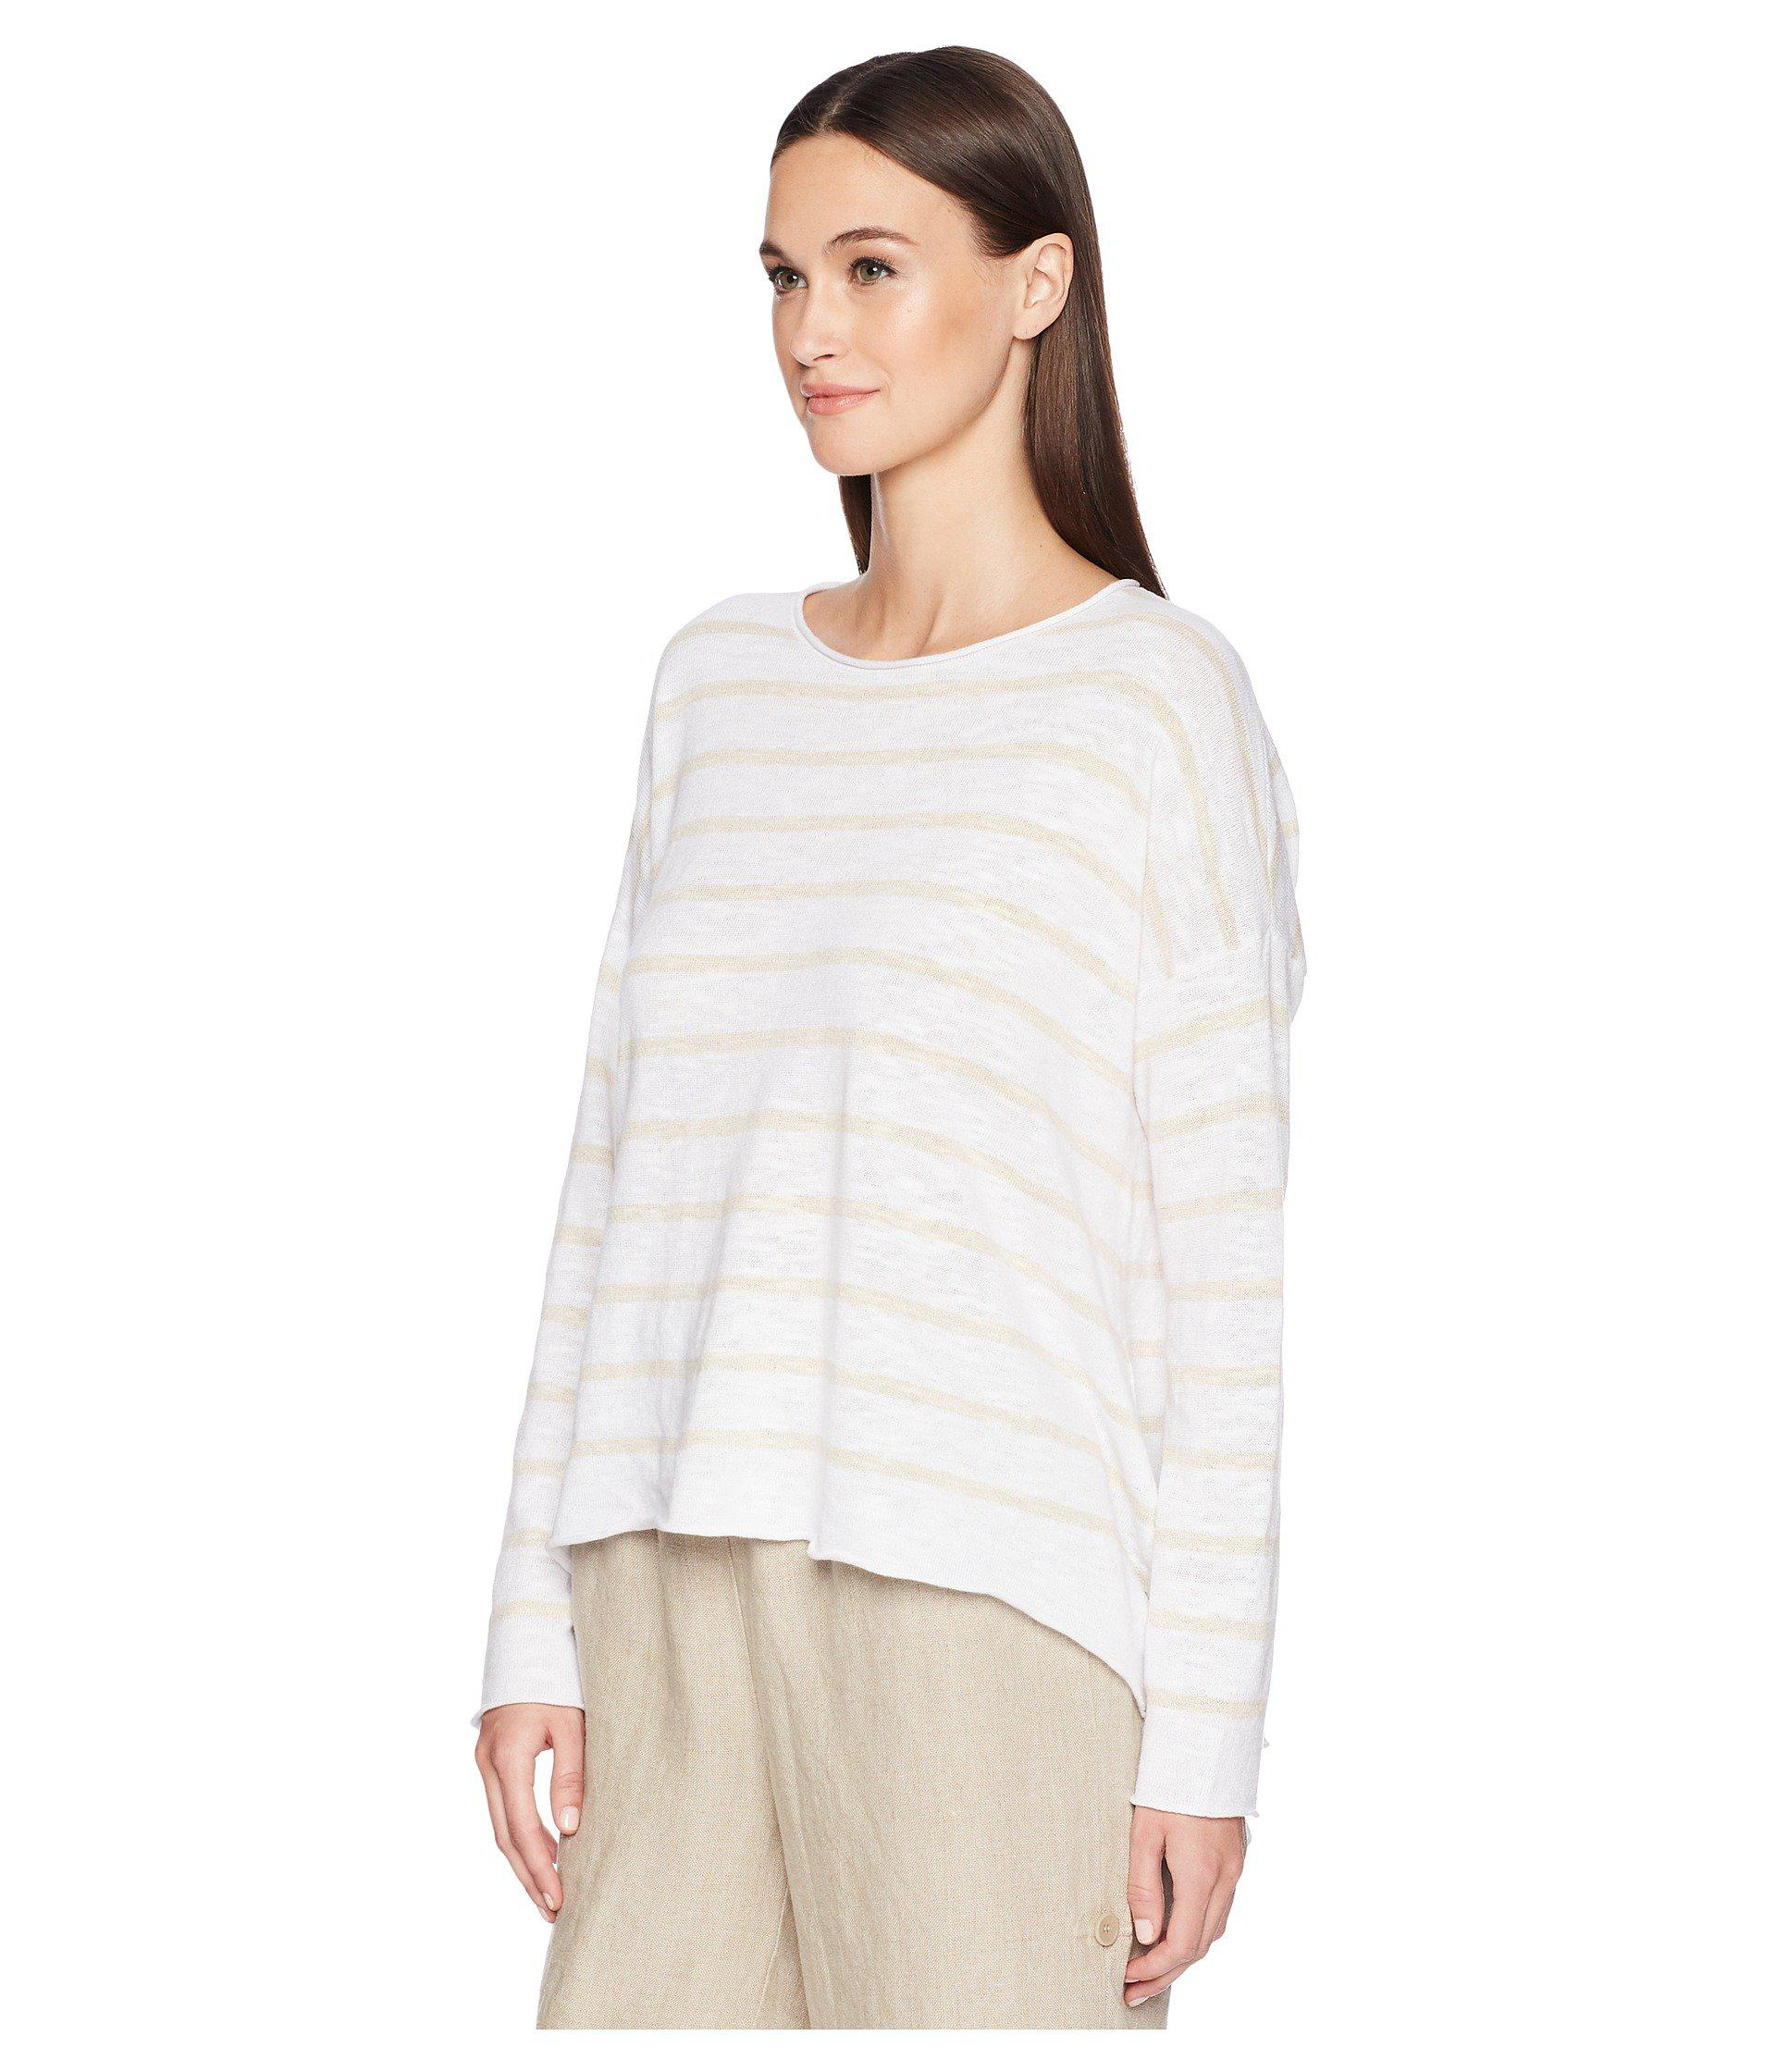 18b761fa591 Lyst - Eileen Fisher Stripe Organic Linen And Cotton Sweater in White -  Save 48%